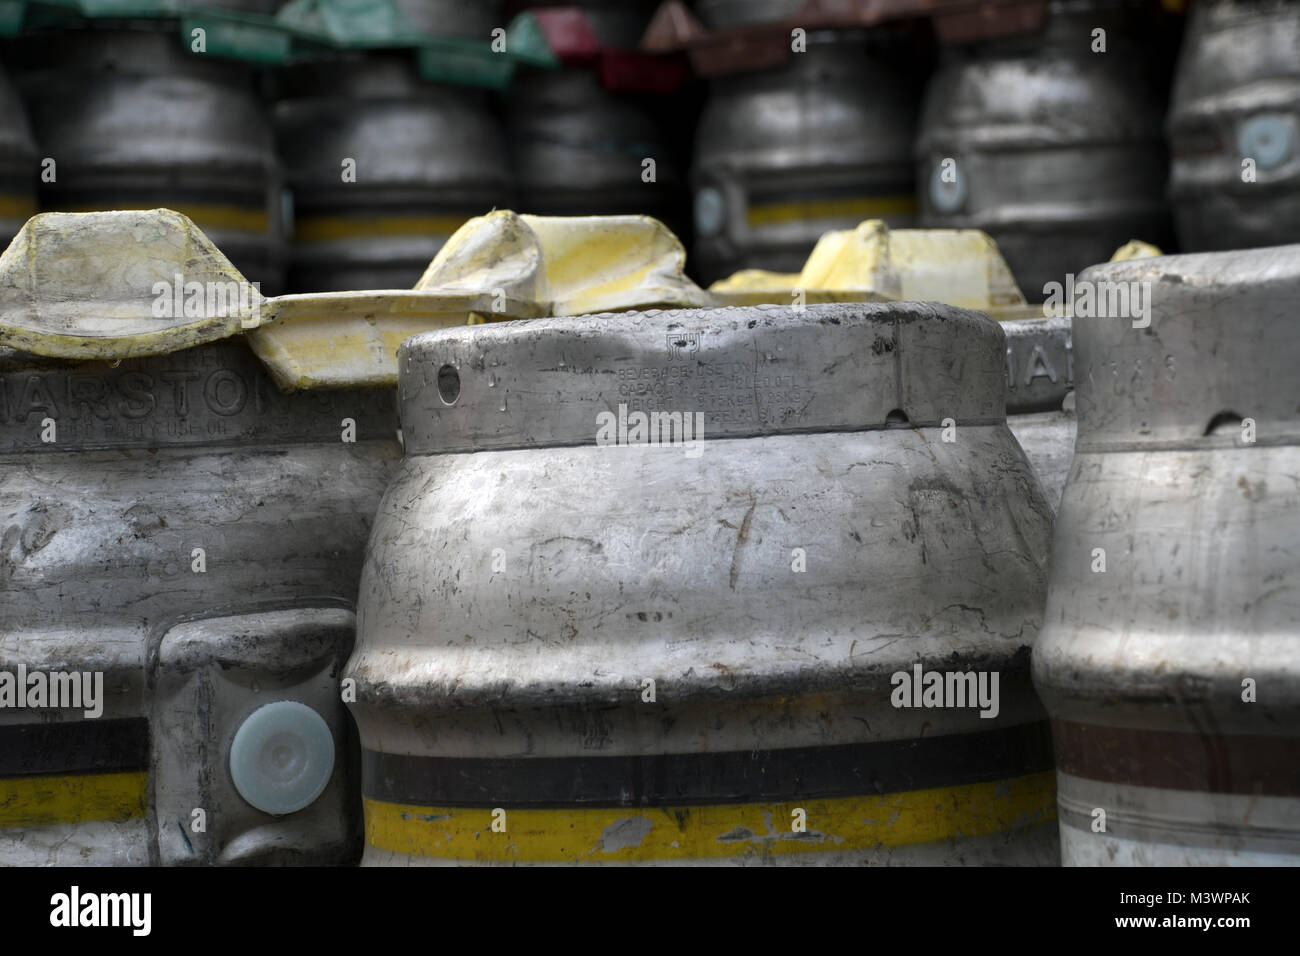 Stacked metal beer barrels at a local brewery - Stock Image